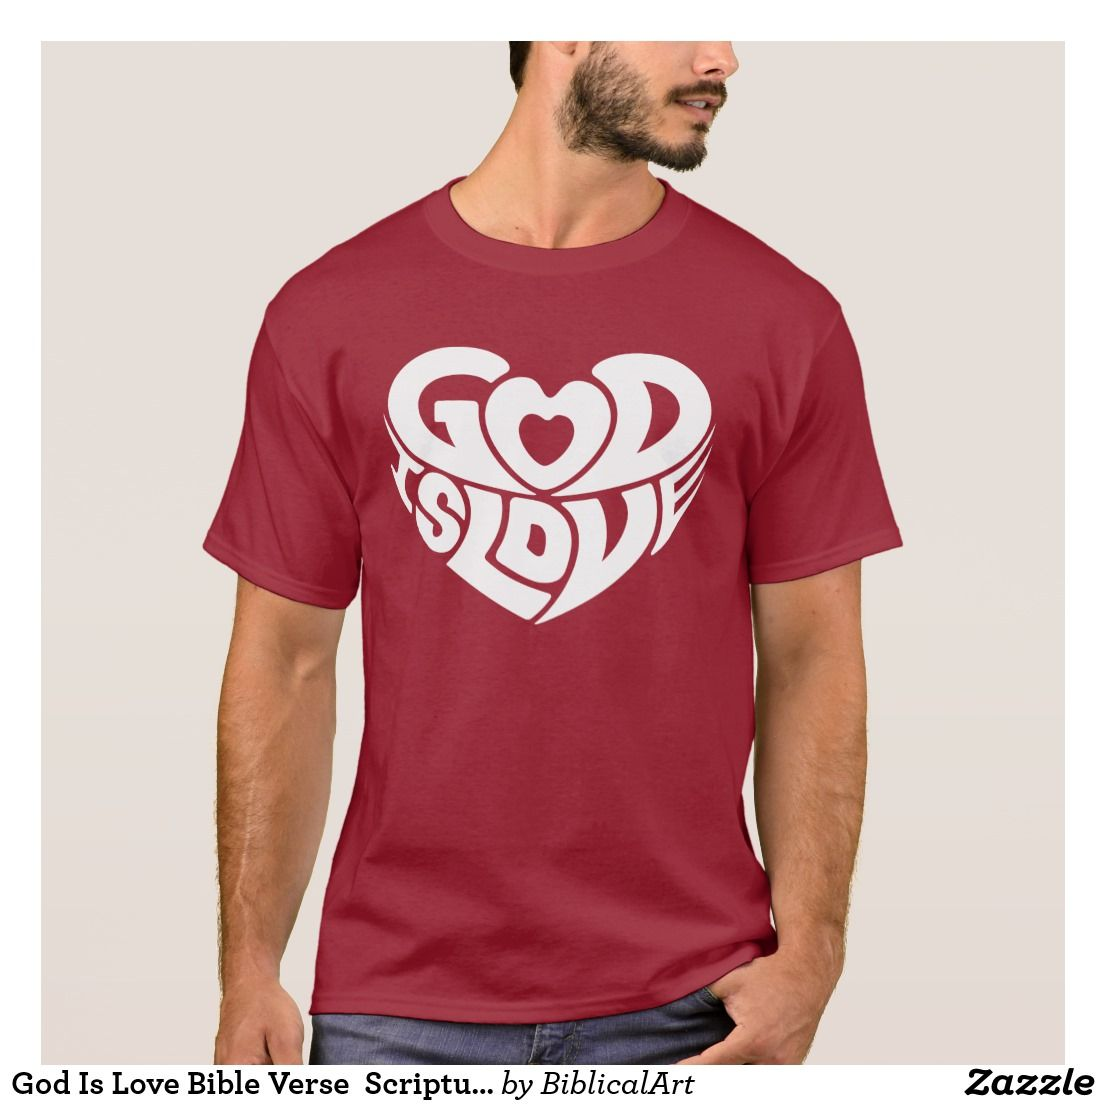 god is love bible verse scripture cool christian t-shirt in 2018